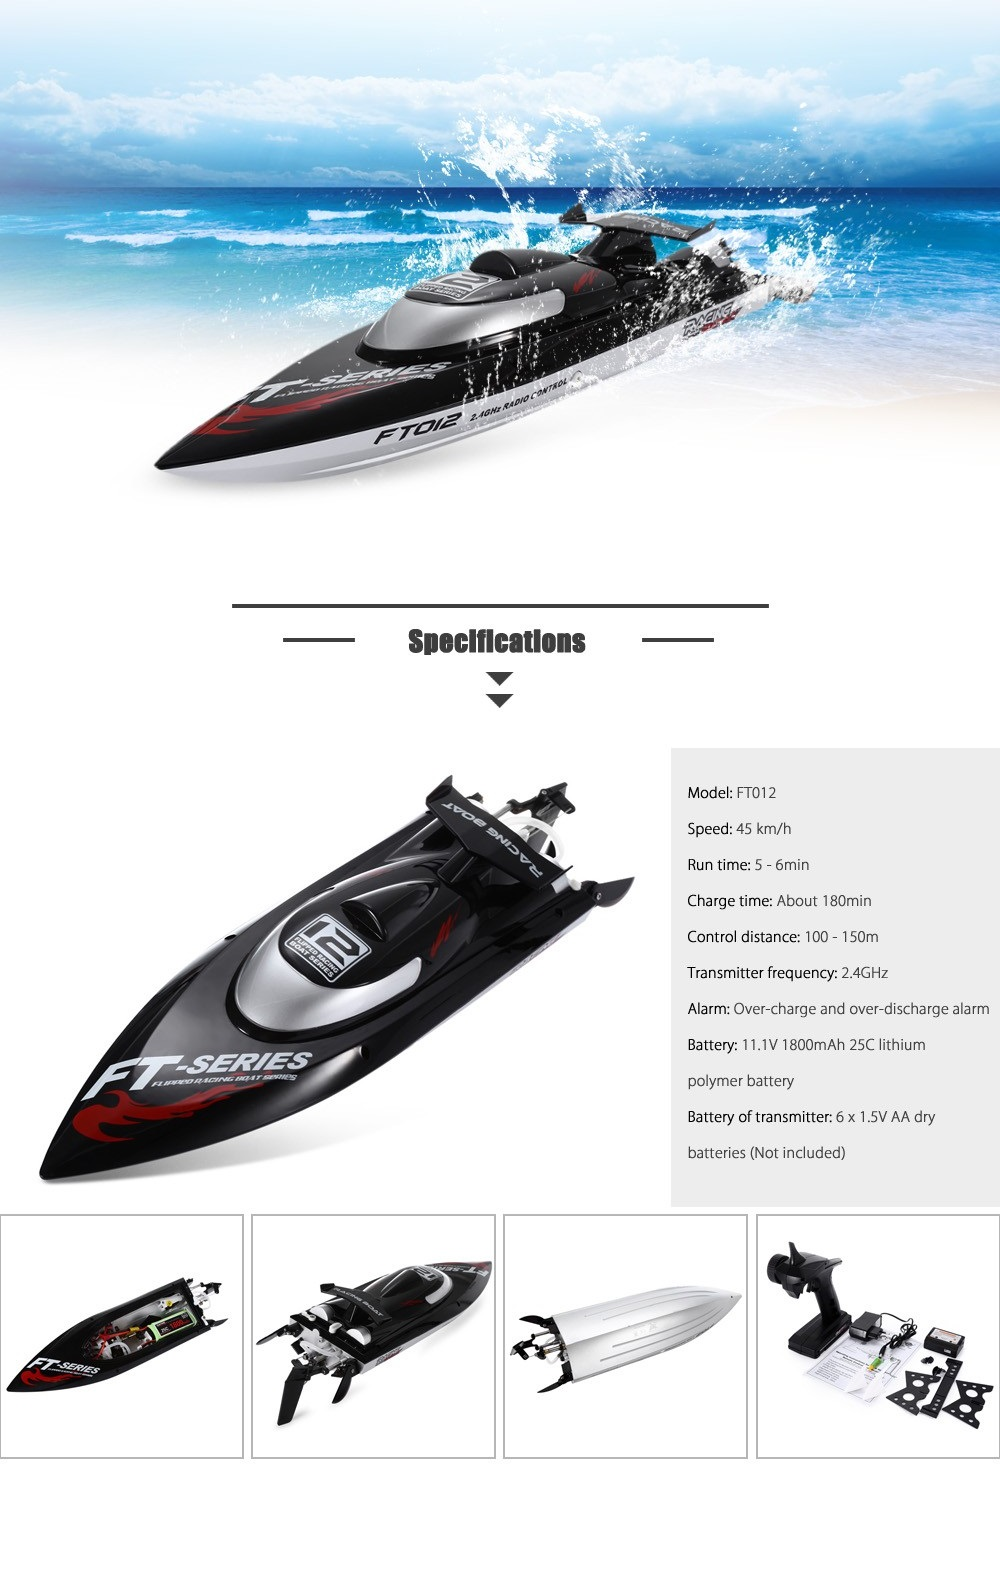 FeiLun FT012 RC High Speed Racing Boat Black Prises Européen